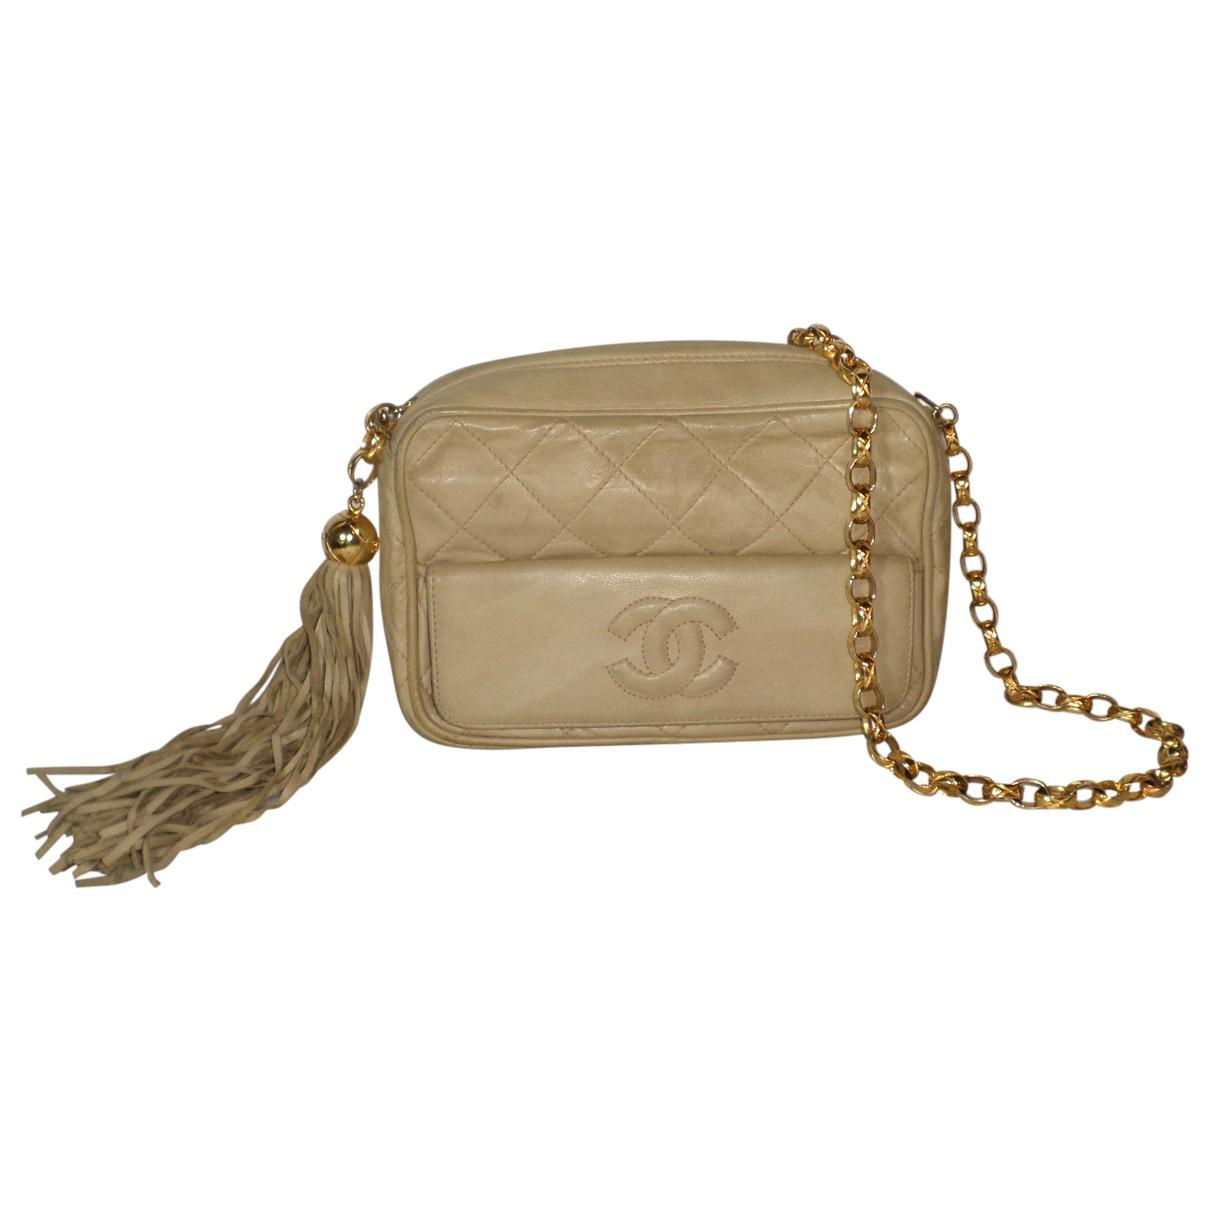 Pre-owned - Camera leather crossbody bag Chanel Jchxl